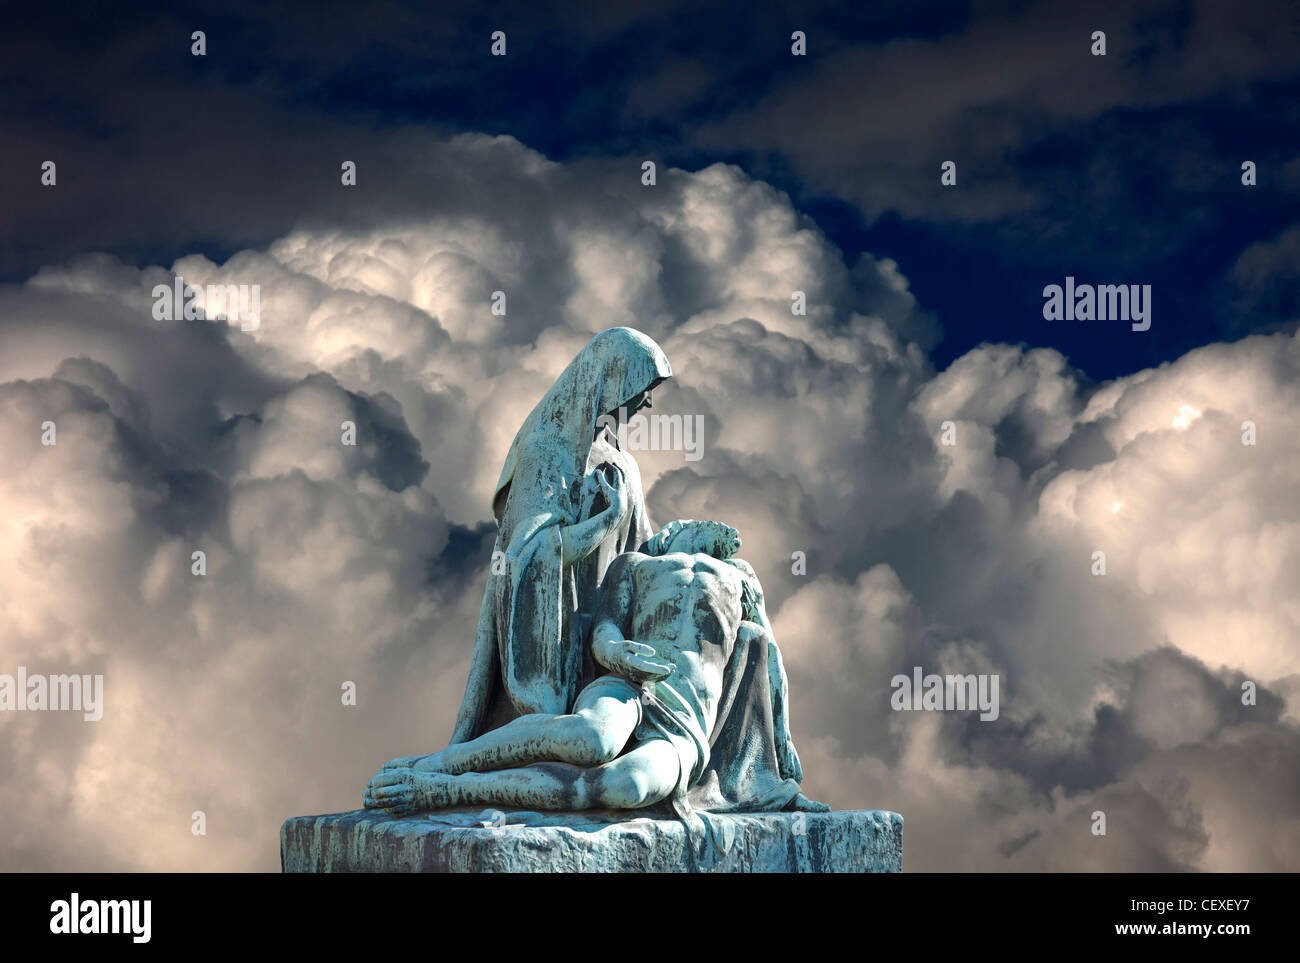 Grave scene with Virgin Mary and death Jesus Christ. Religious art. - Stock Image